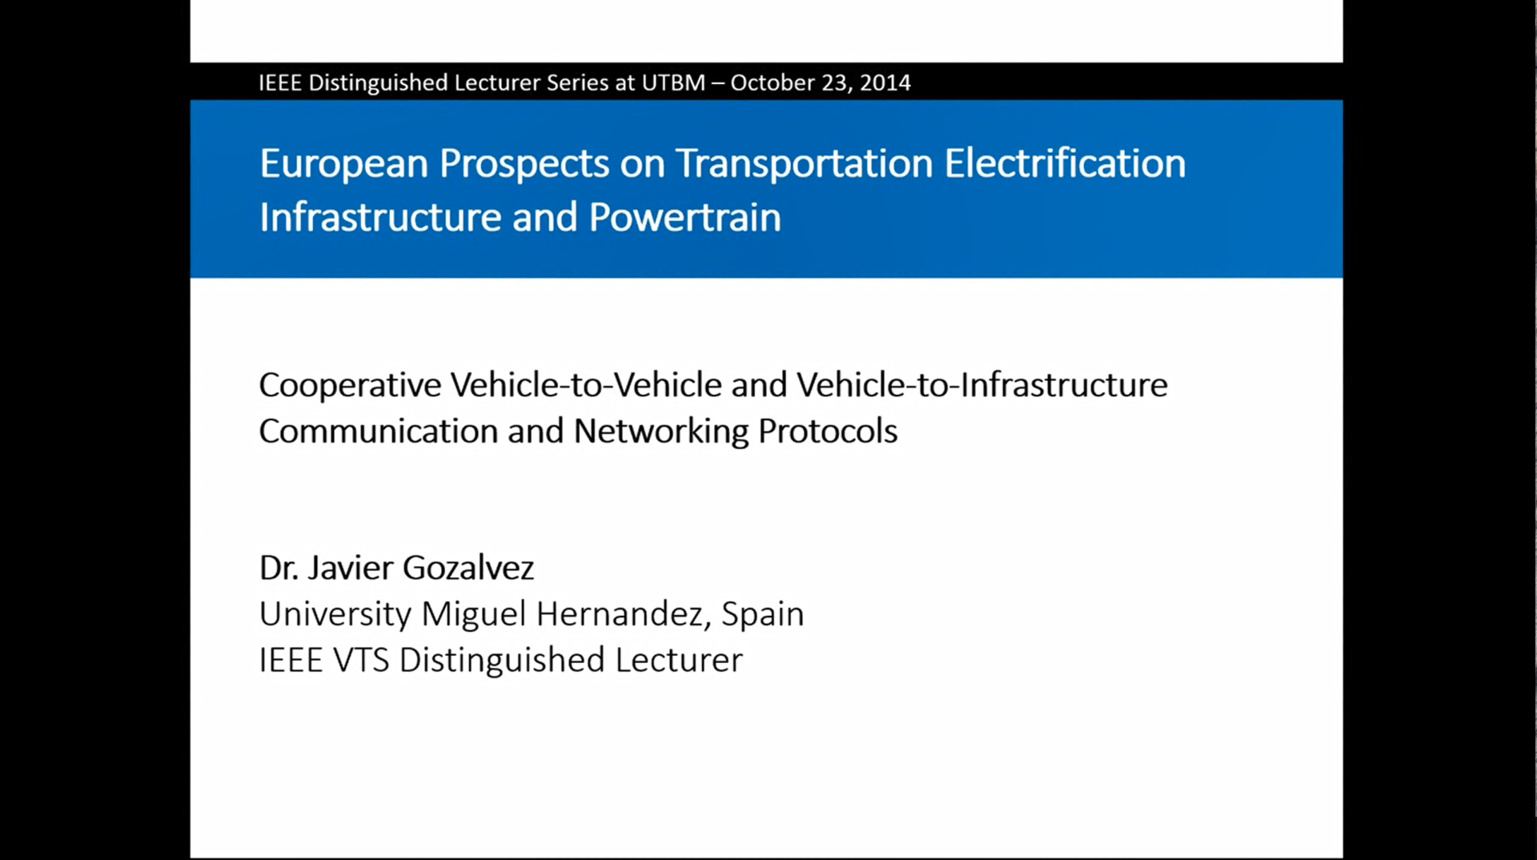 Cooperative Vehicle-to-Vehicle and Vehicle-to-Infrastructure Communication and Networking Protocols